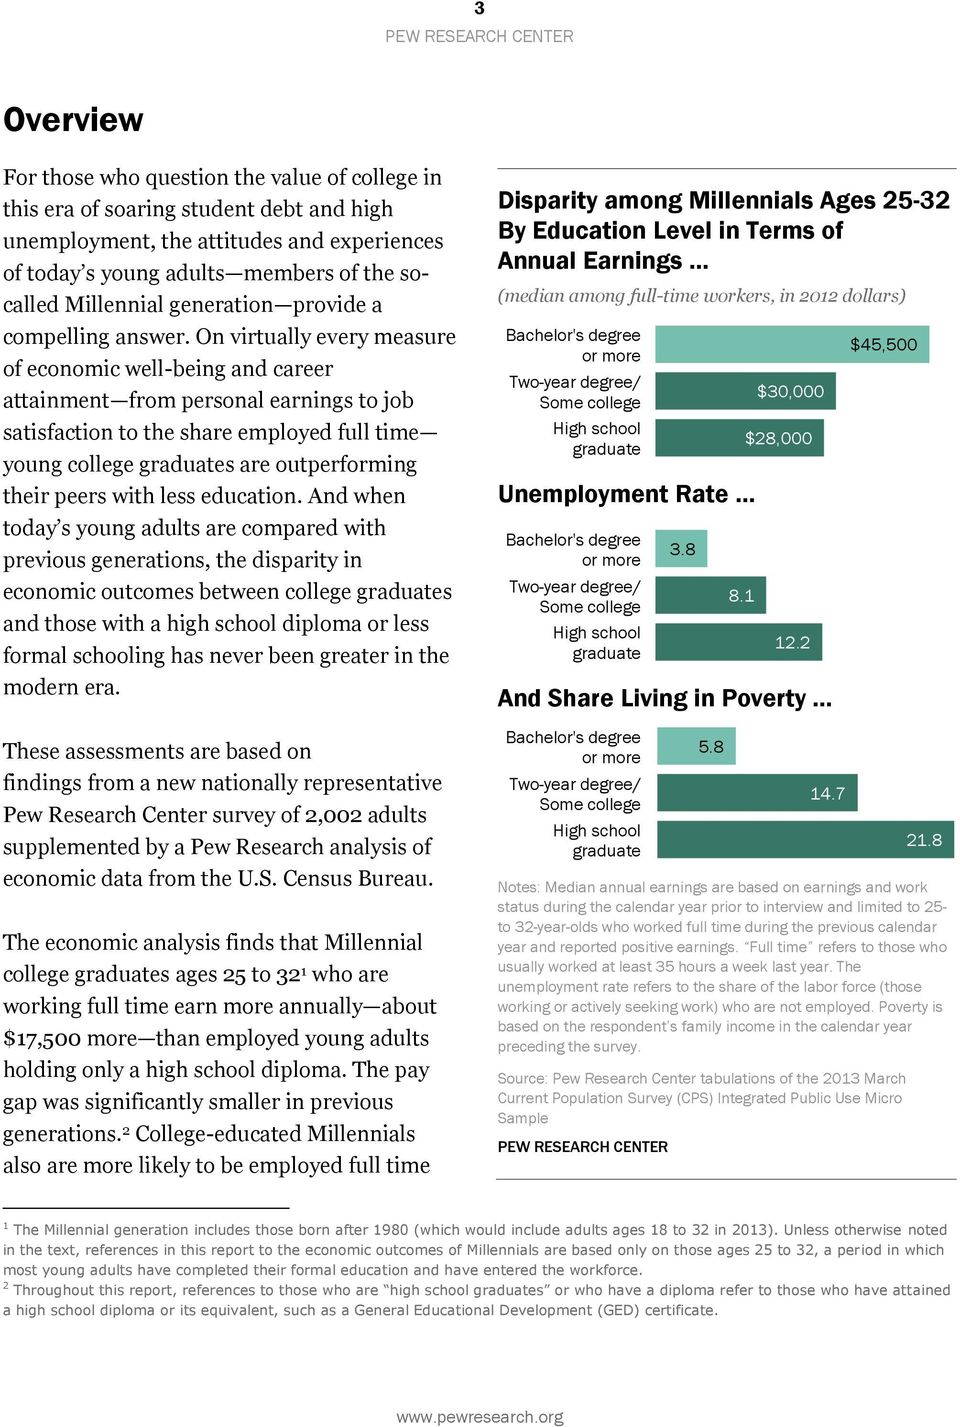 On virtually every measure of economic well-being and career attainment from personal earnings to job satisfaction to the share employed full time young college graduates are outperforming their